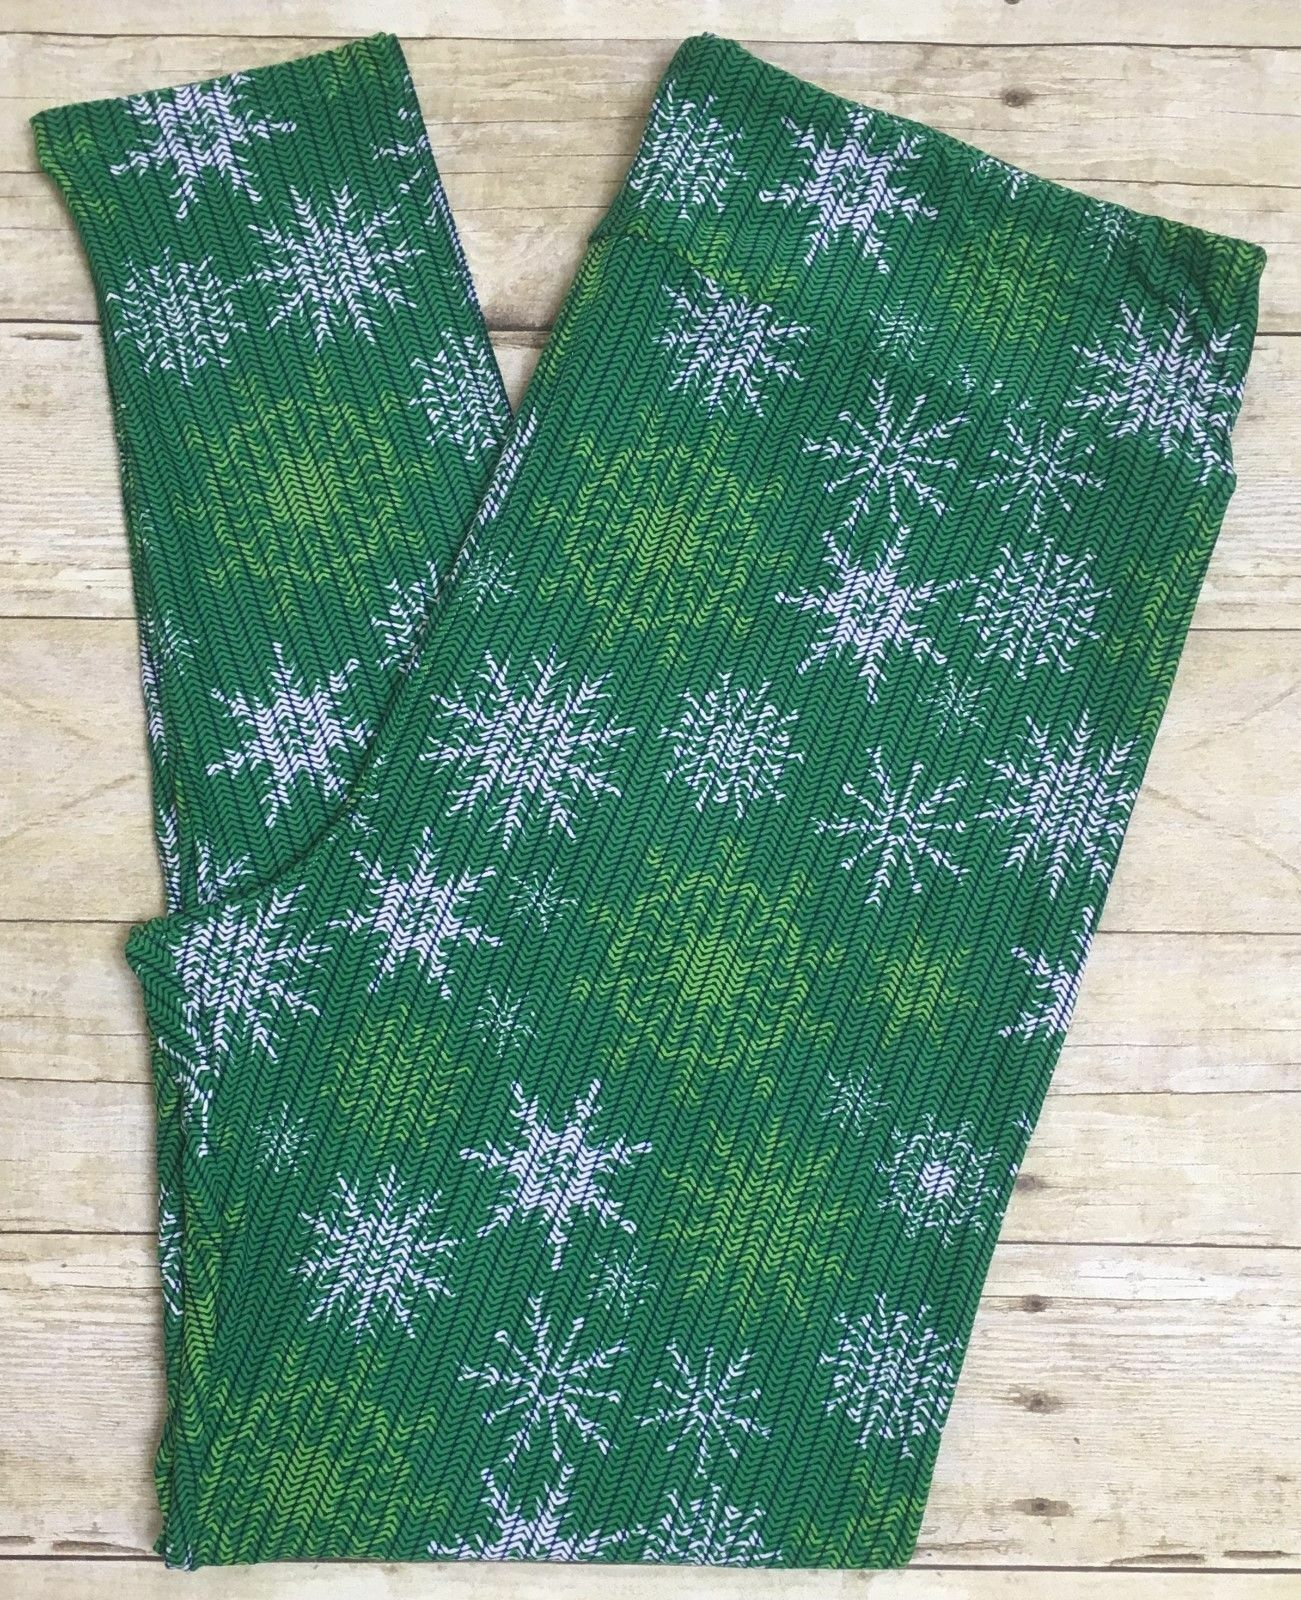 2017 LuLaRoe Christmas Leggings Green Snowflakes TC2 Legging